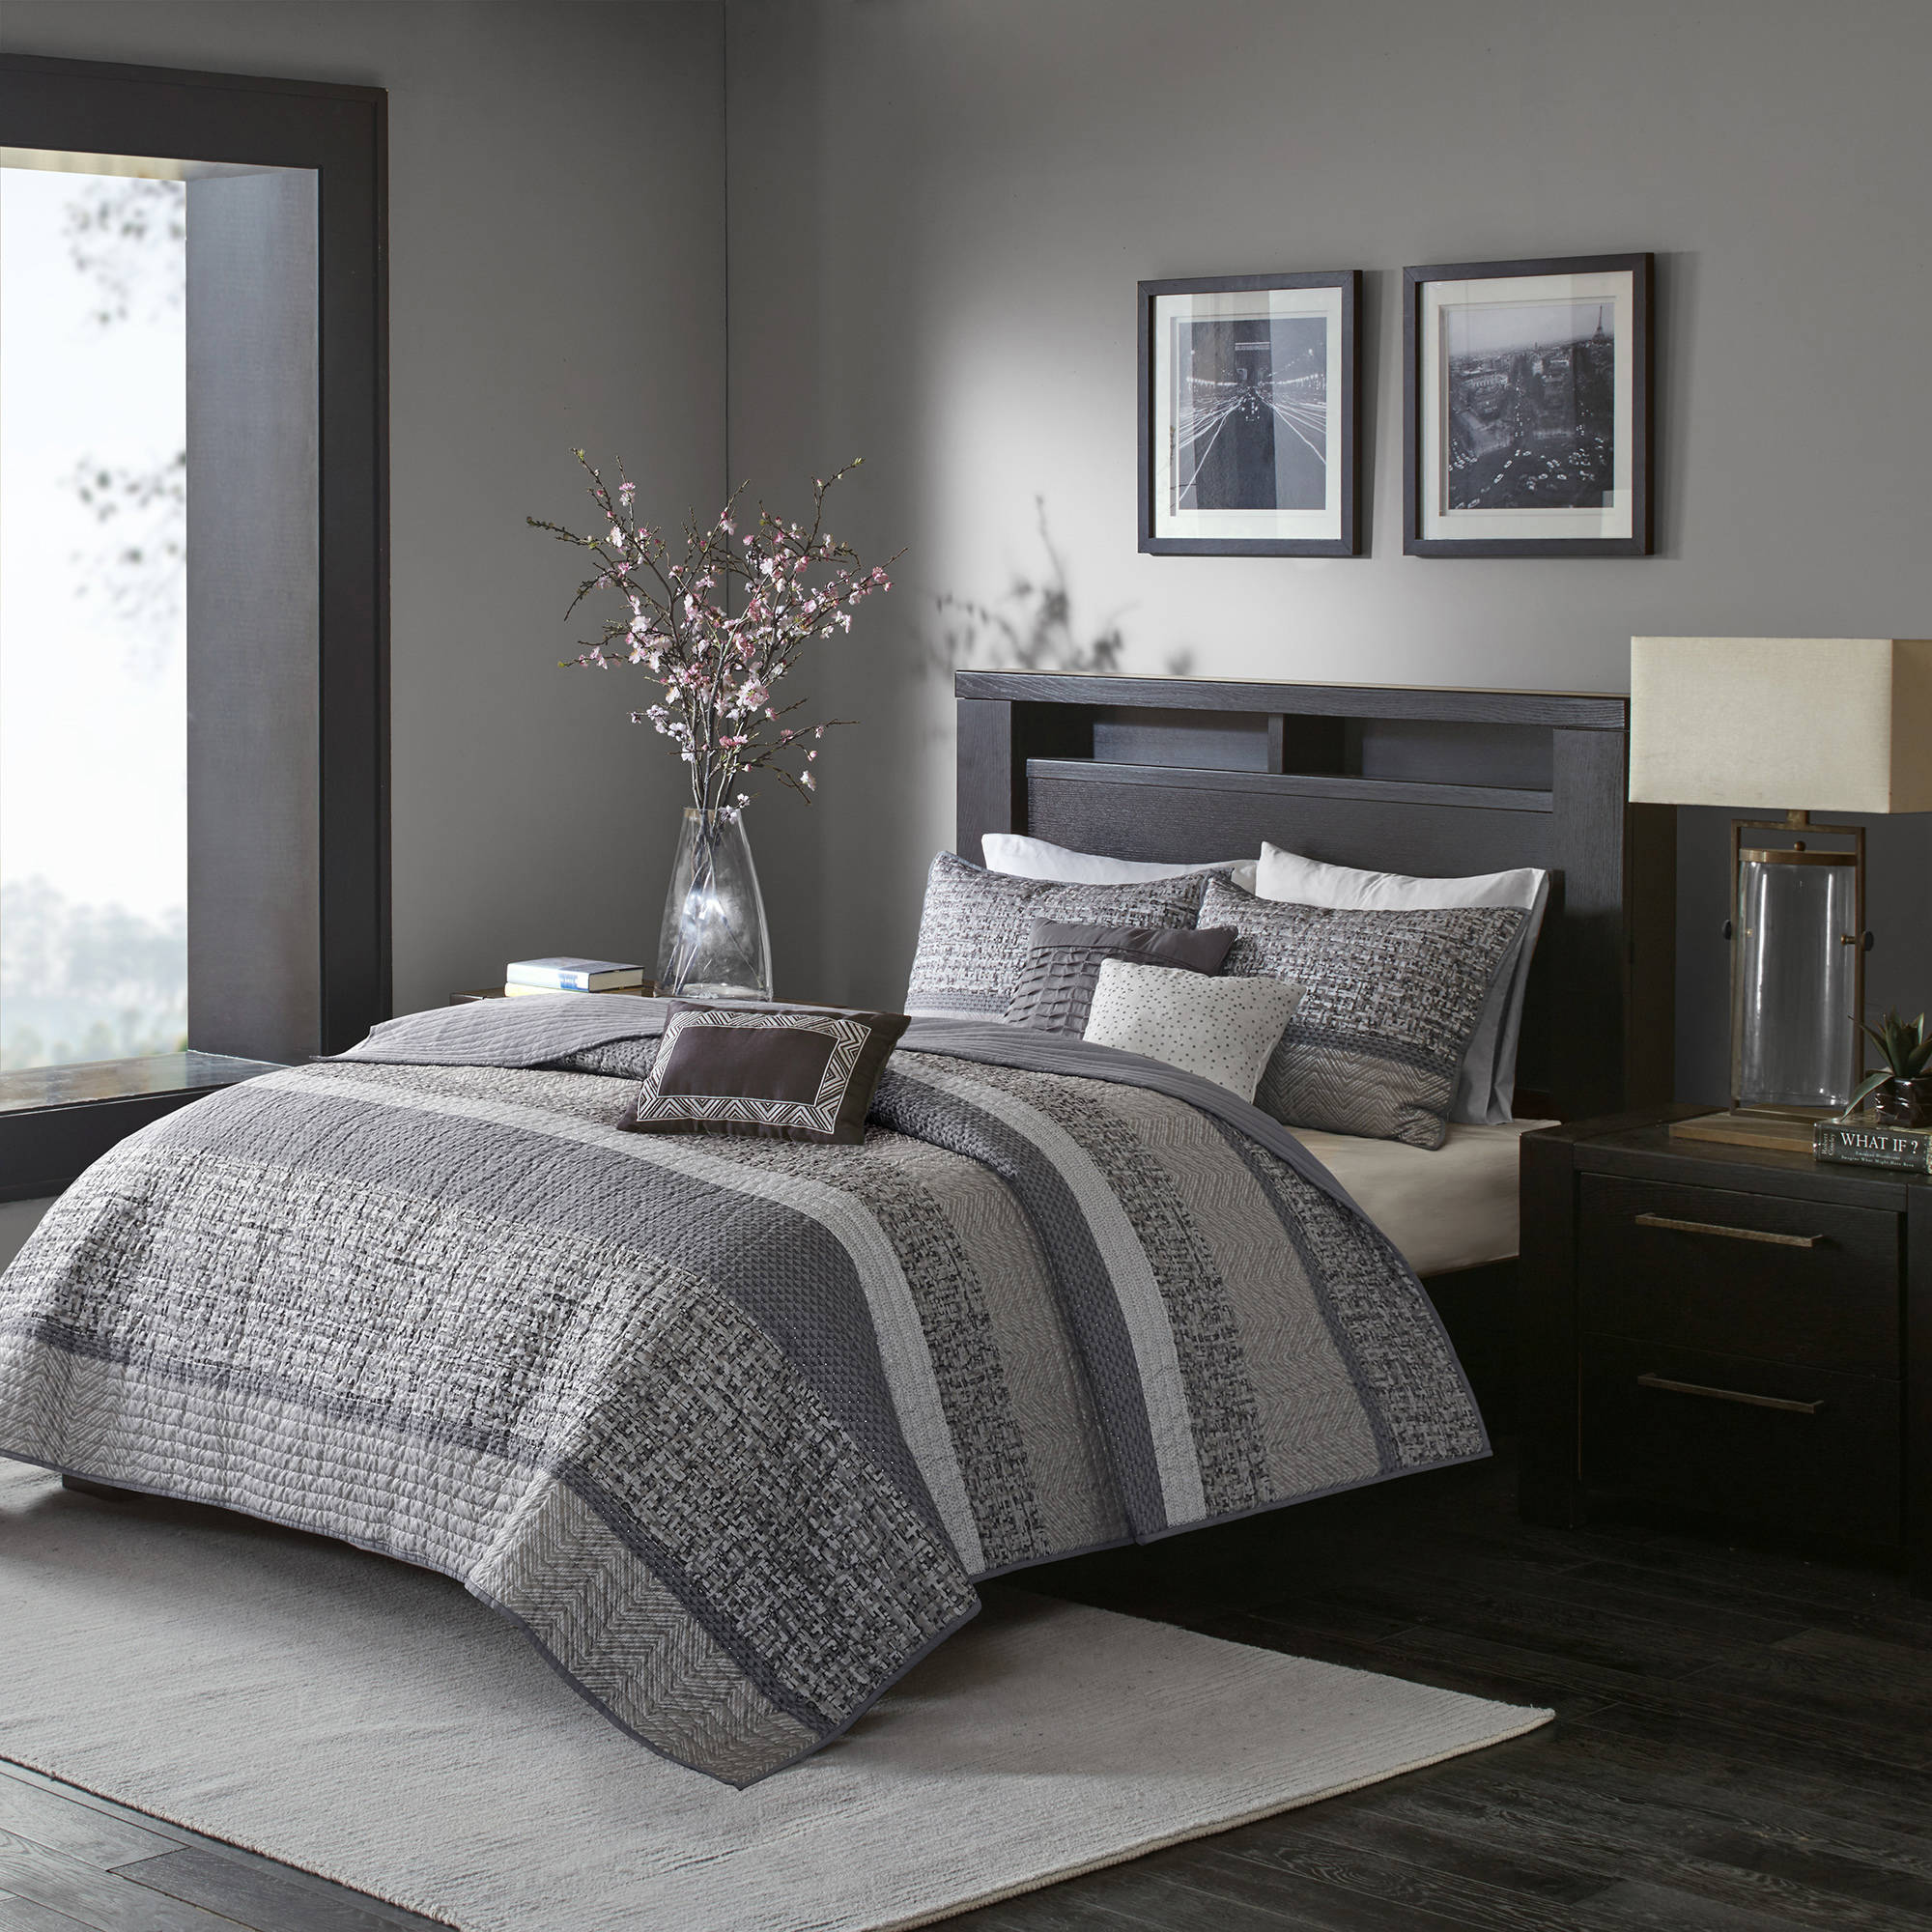 Home Essence Harmony 6PC Woven Jacquard Quilted Coverlet Bedding Set